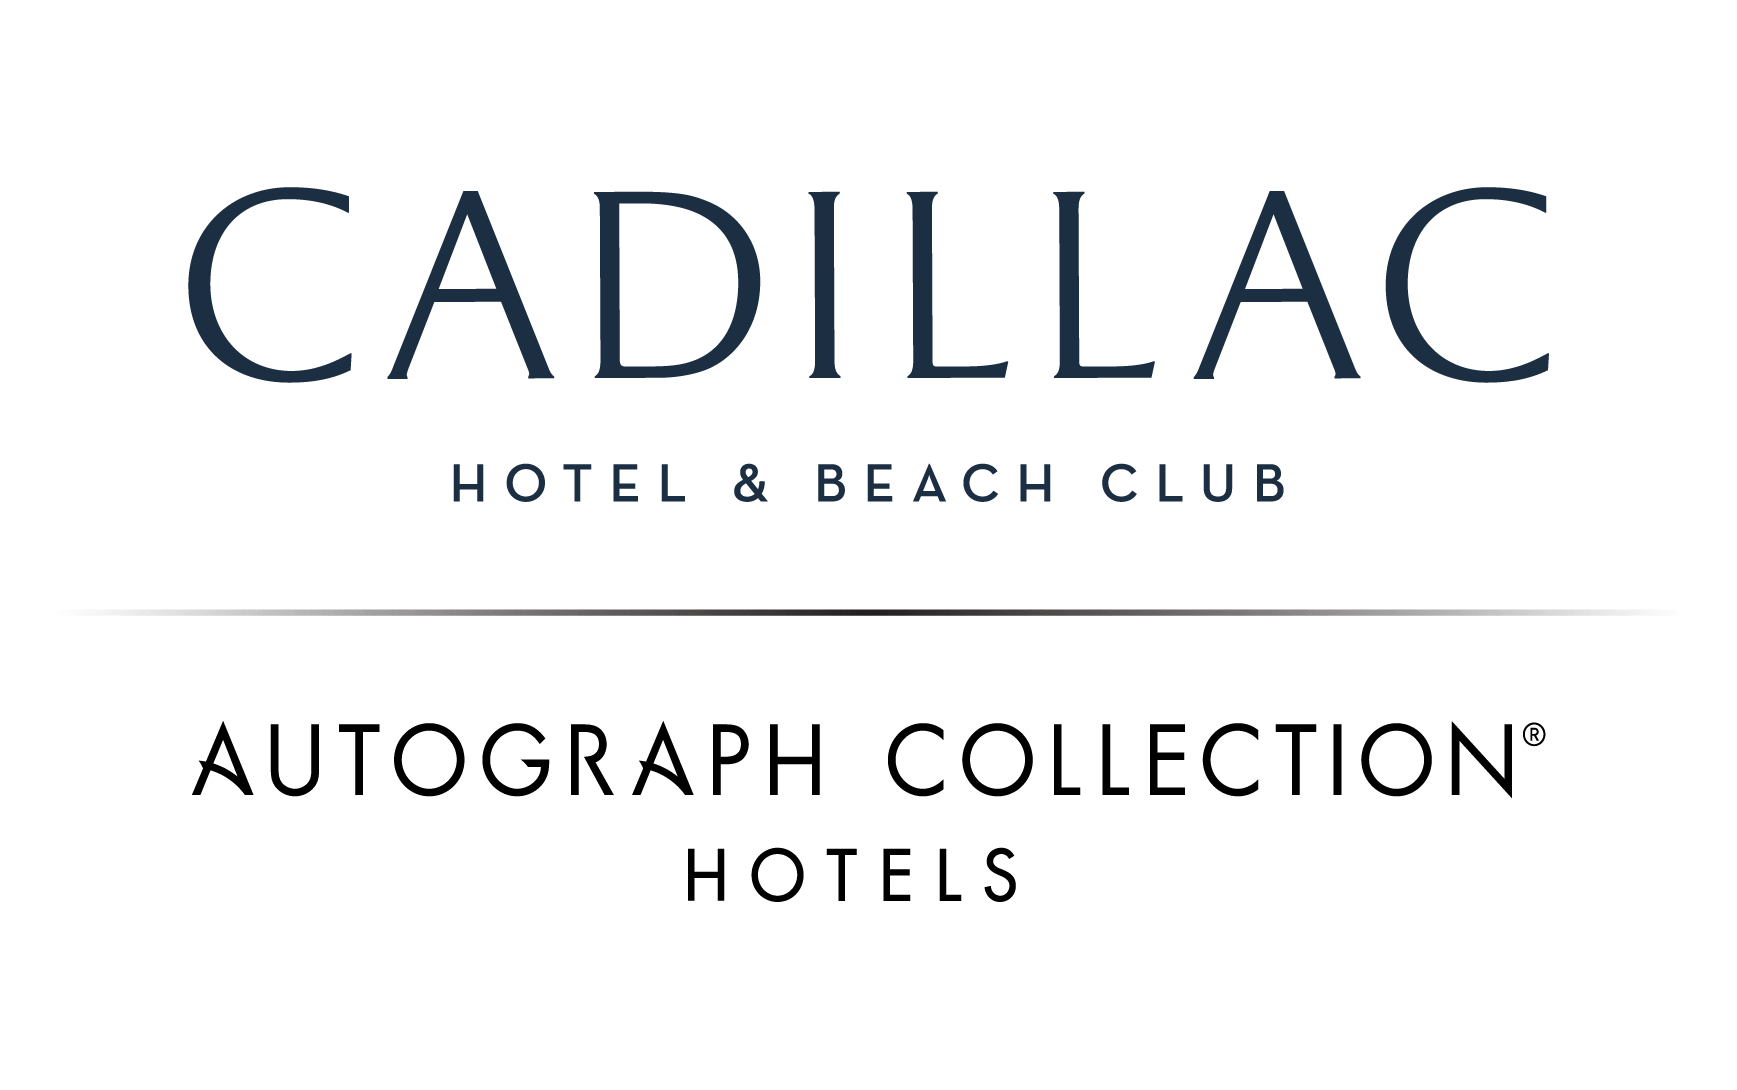 Cadillac Hotel & Beach Club, Miami Beach Logo